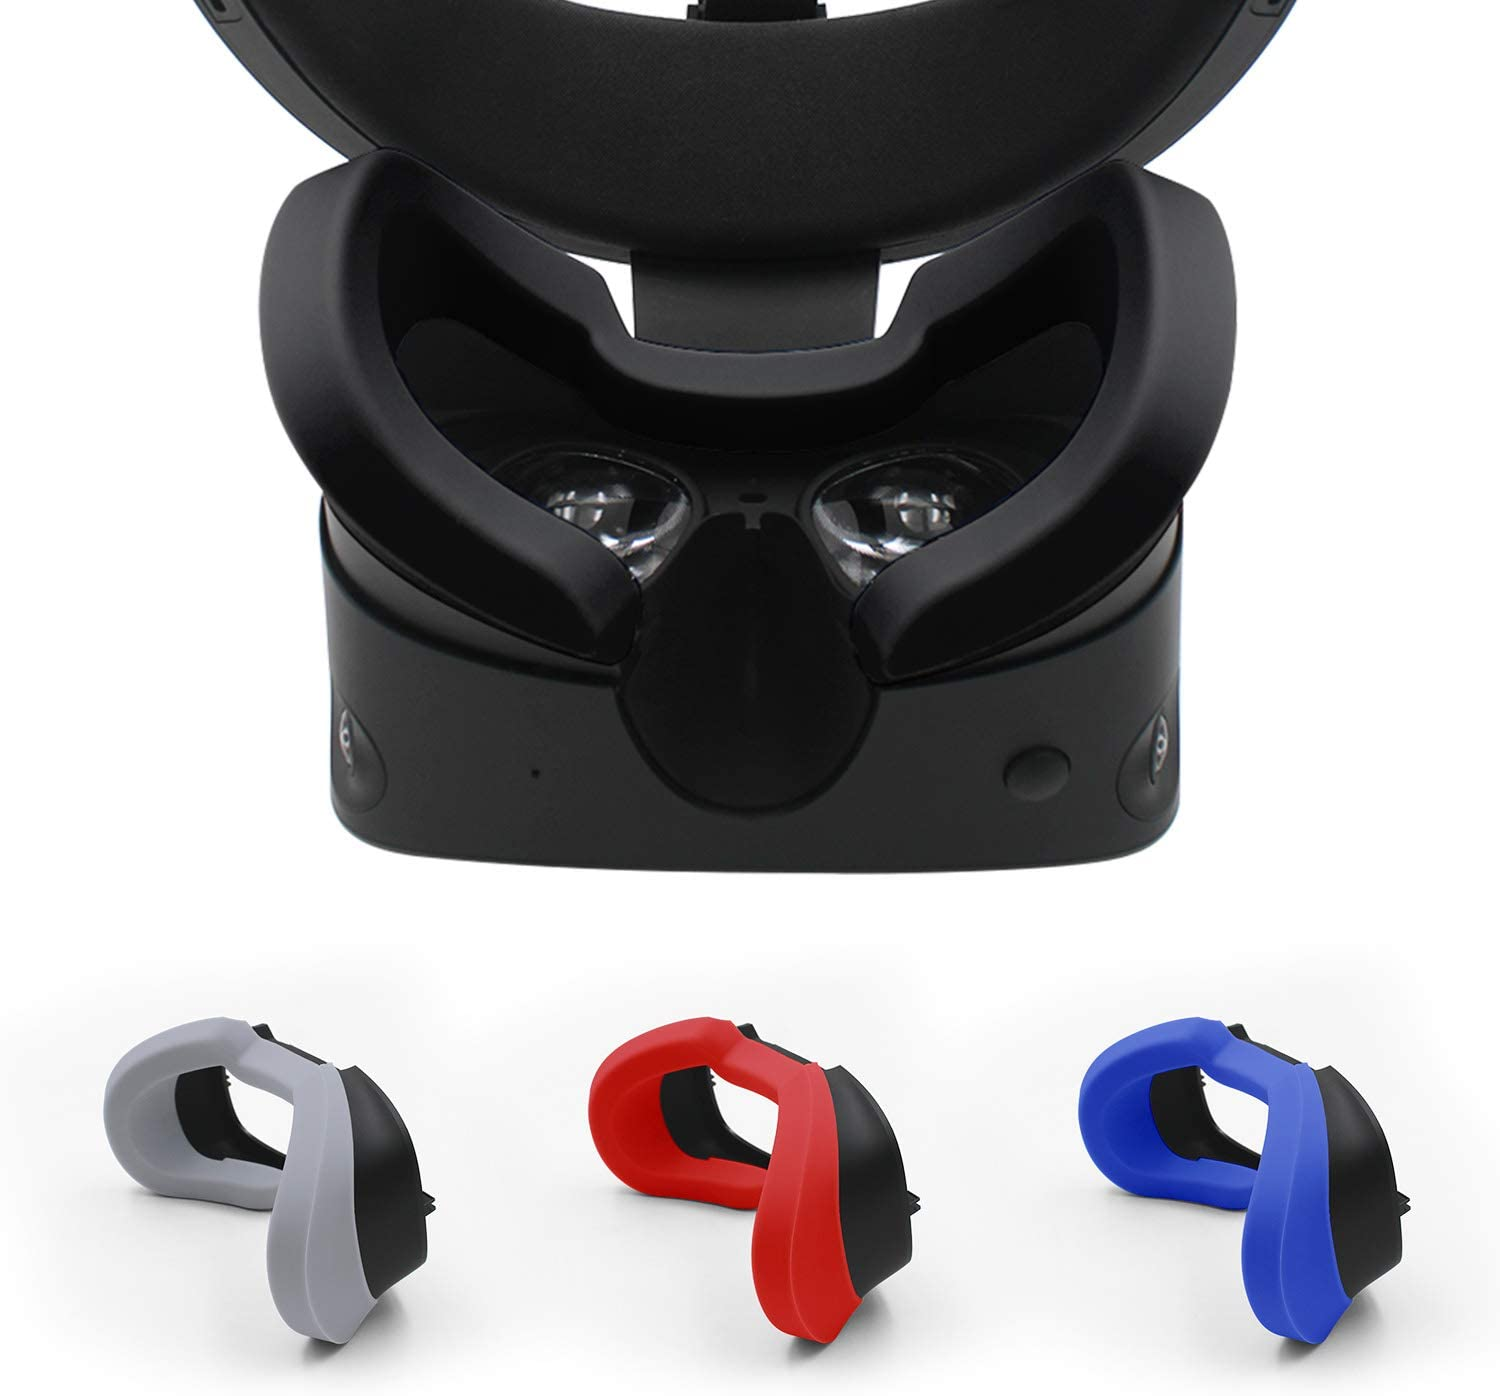 Amvr Vr Silicone Protective Case For Oculus Rift S Elektronik